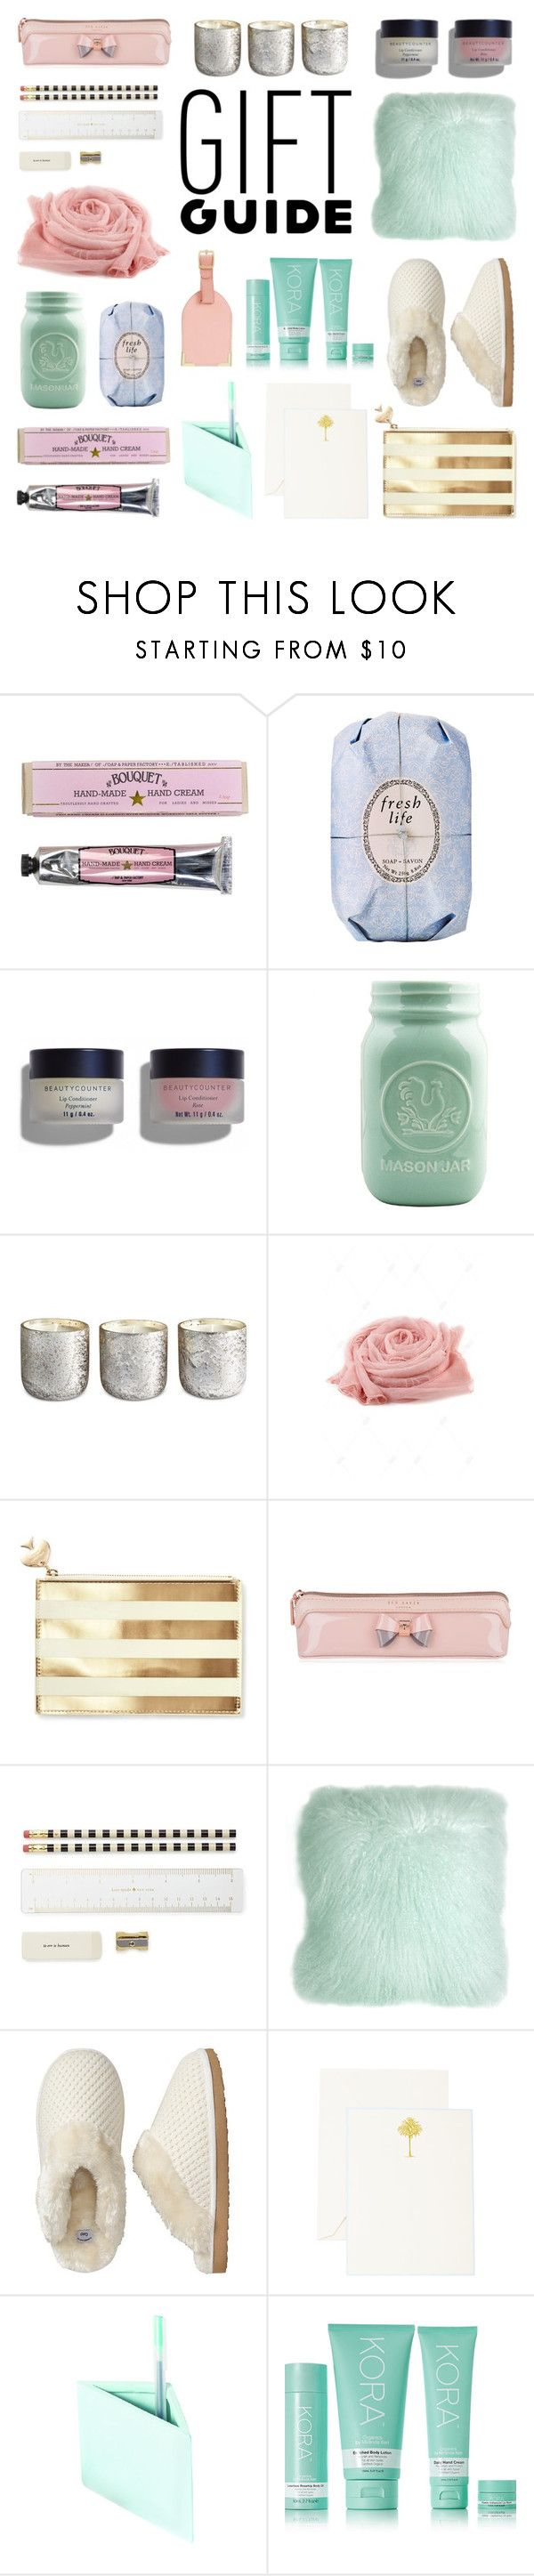 """Gift Guide: Work BFF"" by deepwinter ❤ liked on Polyvore featuring Soap & Paper Factory, Fresh, Illume, Kate Spade, Ted Baker, Pillow Decor, Gap, The Printery, Imm Living and KORA Organics by Miranda Kerr"